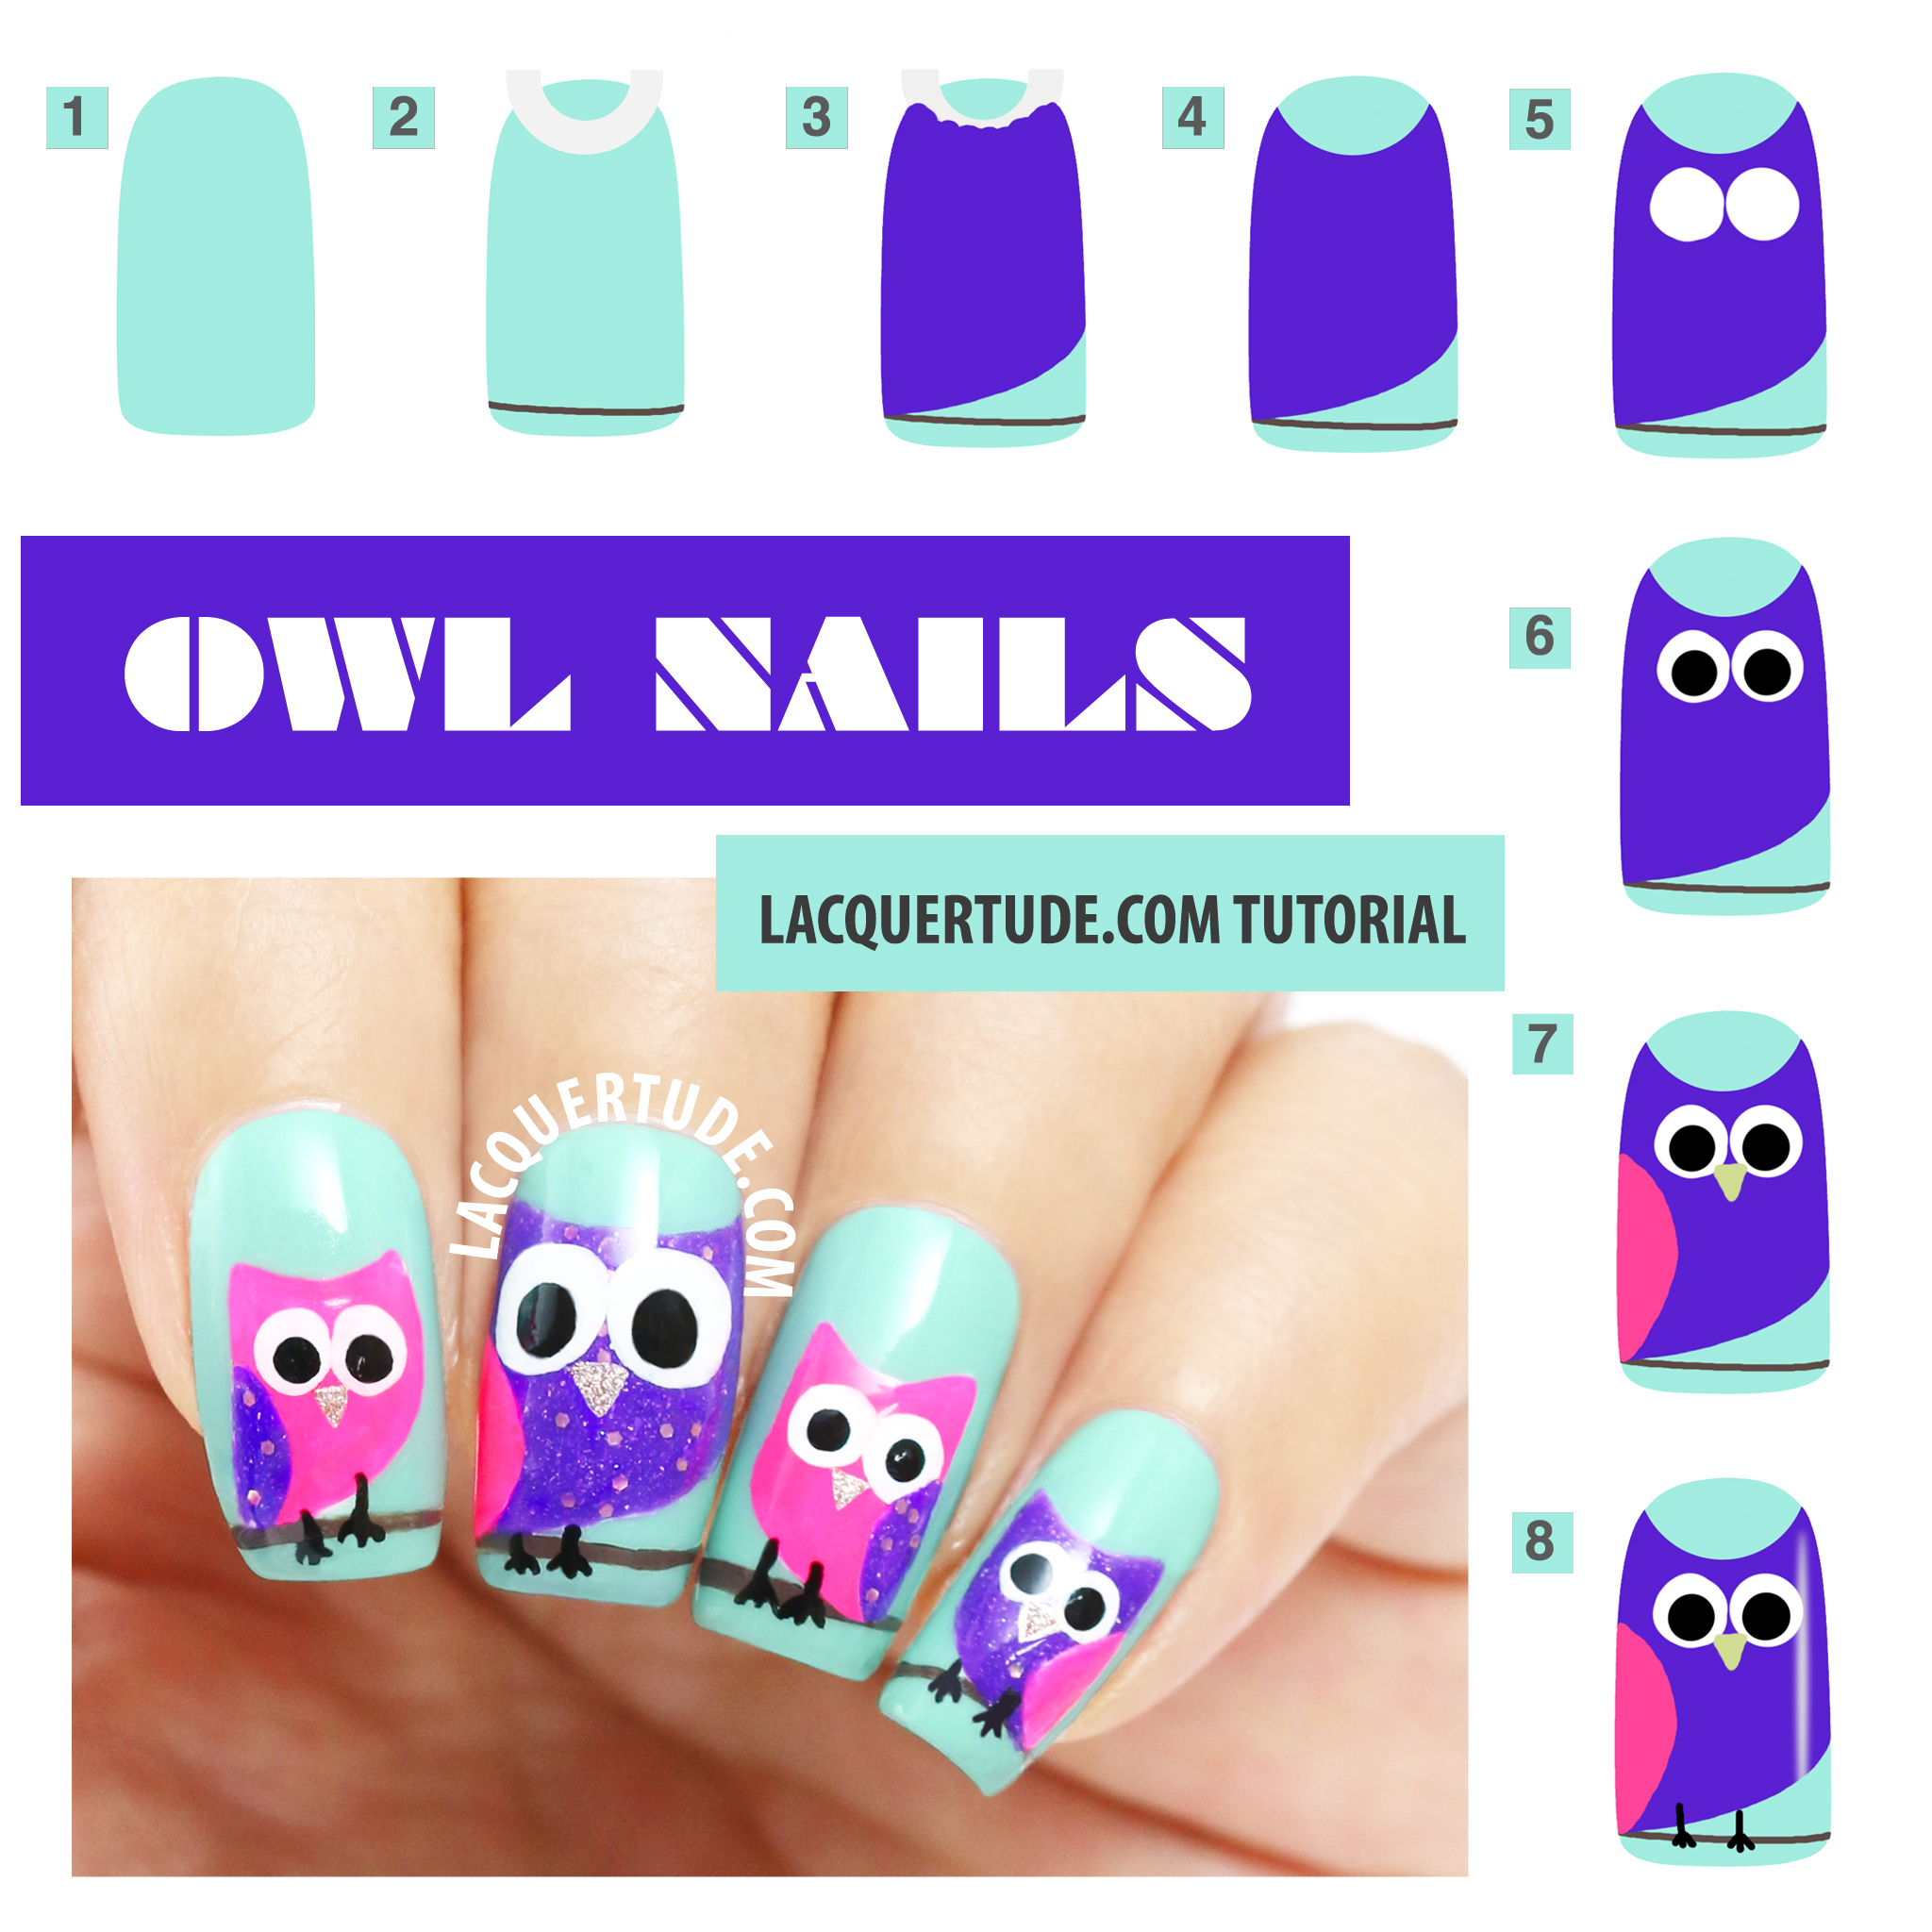 OWL NAILS Tutorial IG